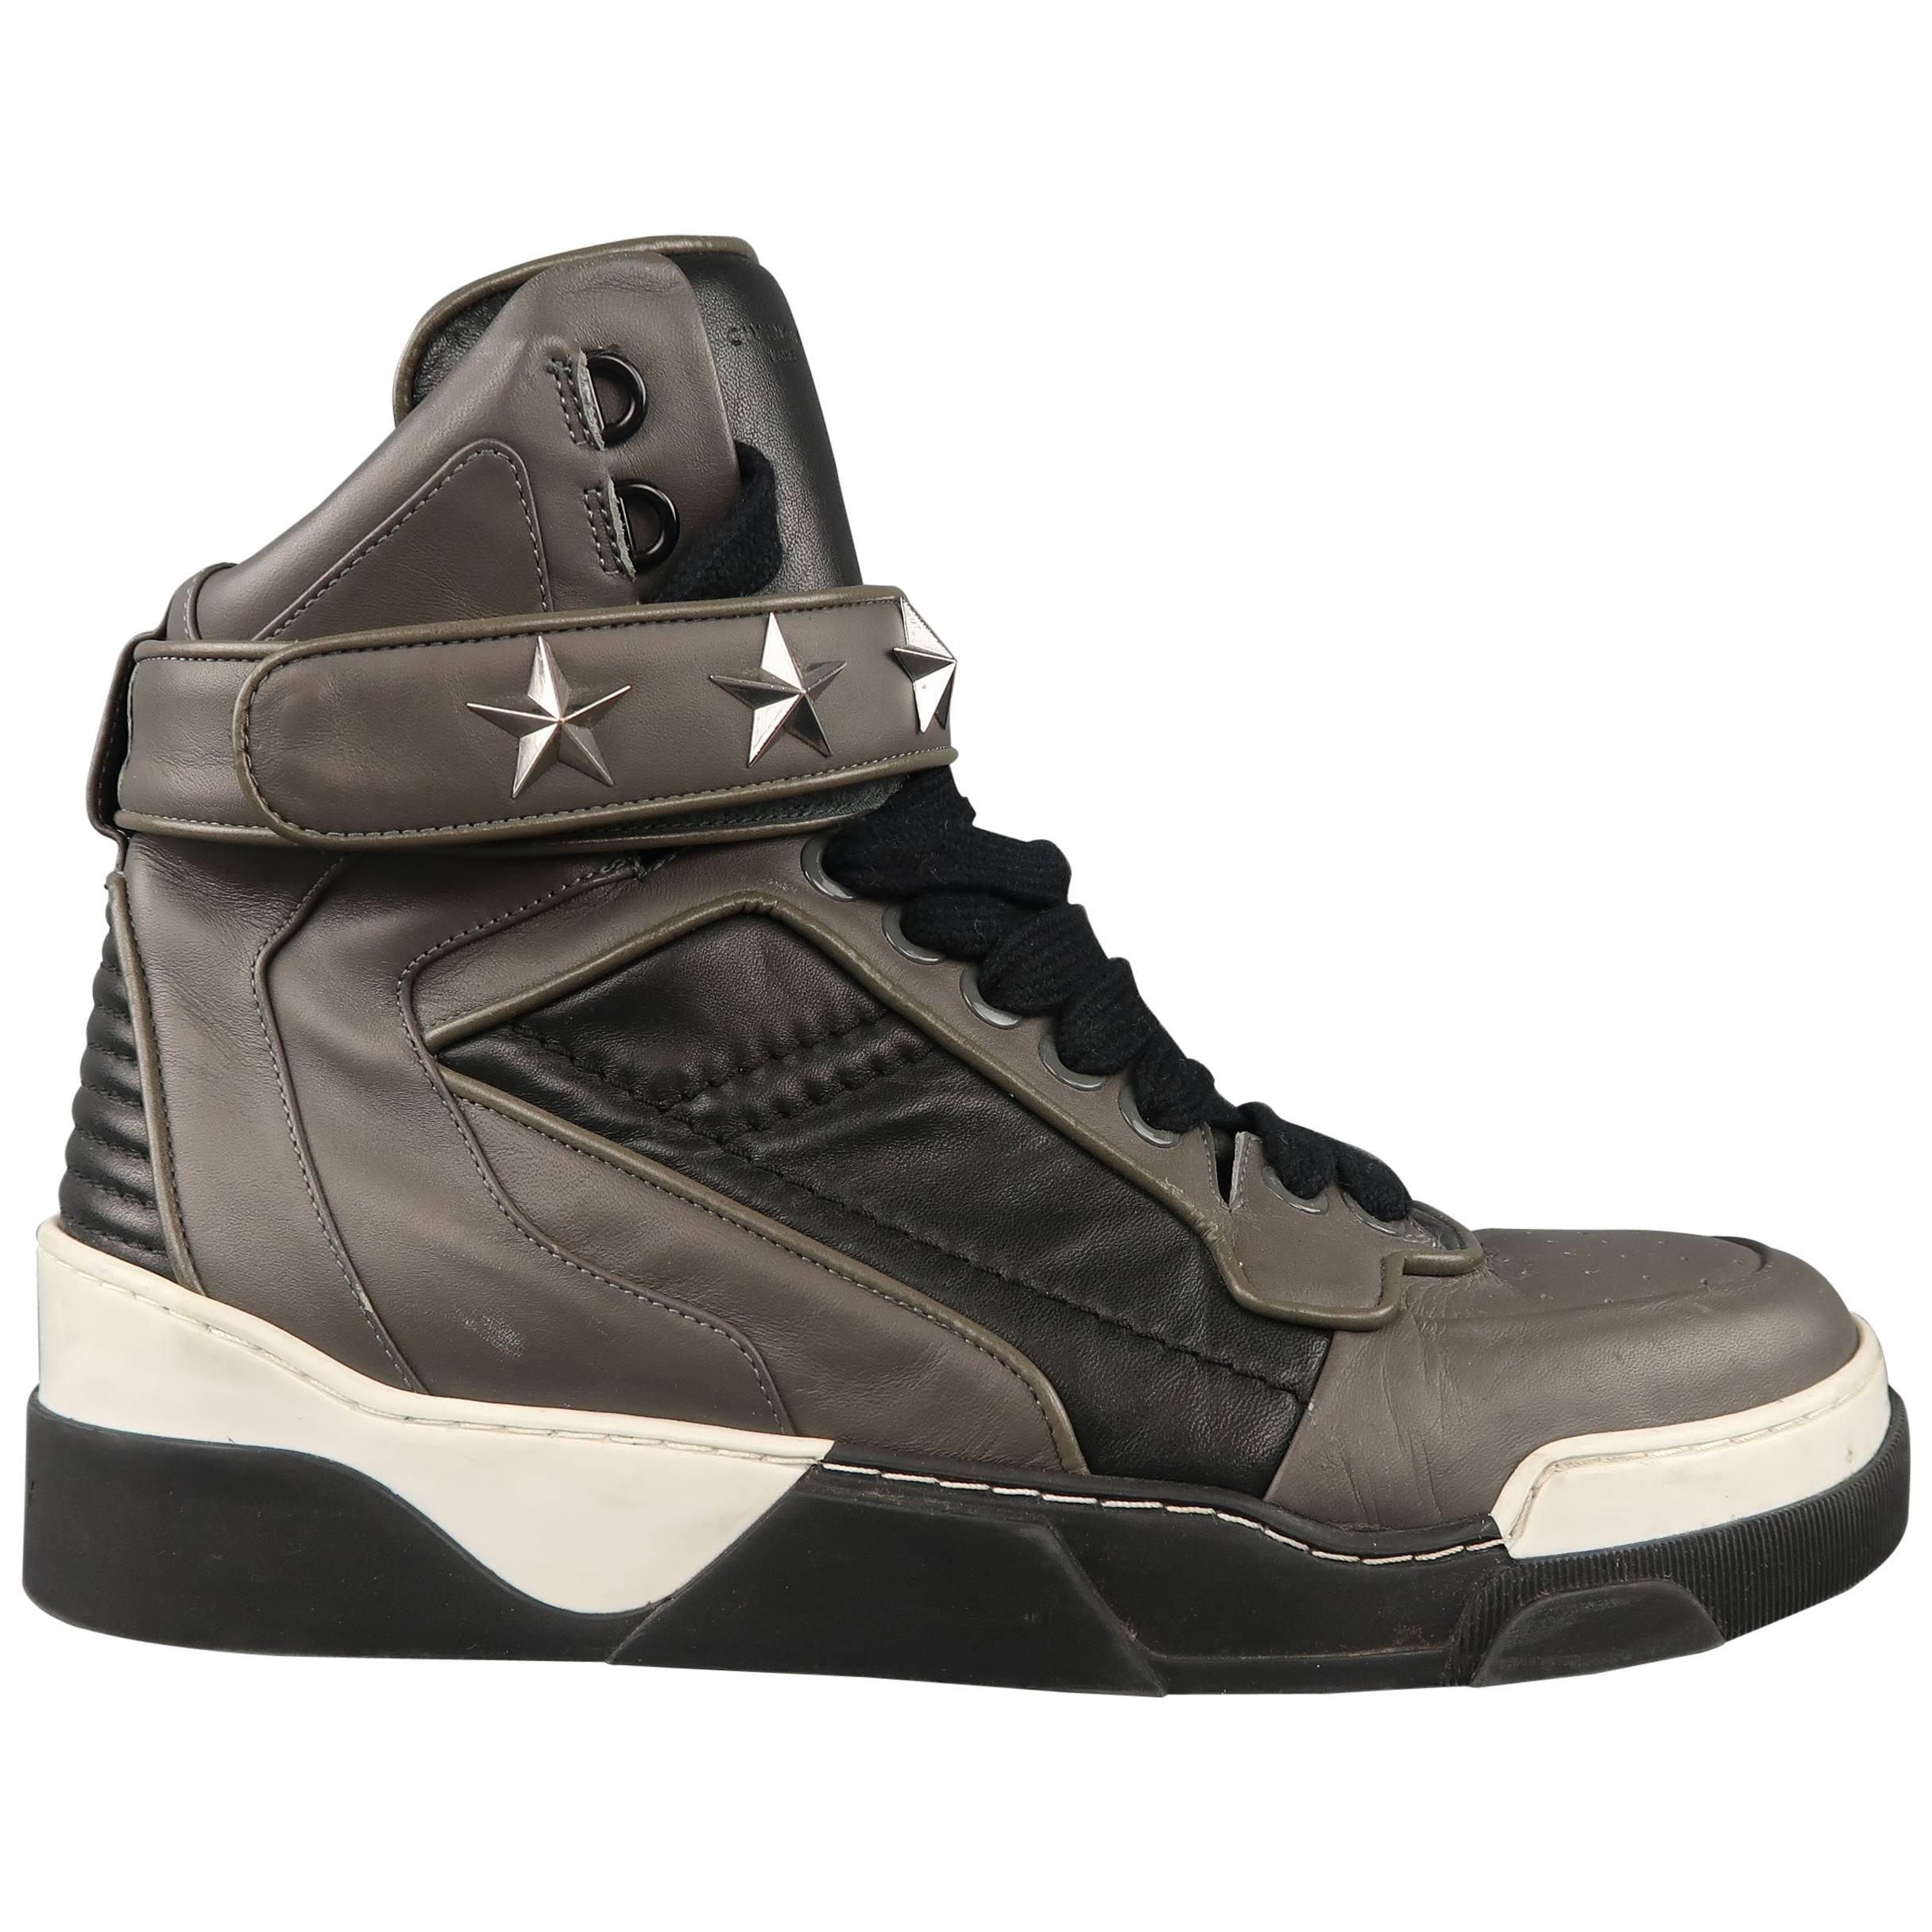 Men s GIVENCHY Sneakers - Size 11 Grey and Black Leather Star Strap Tyson  High Top at 1stdibs 32a1997daf